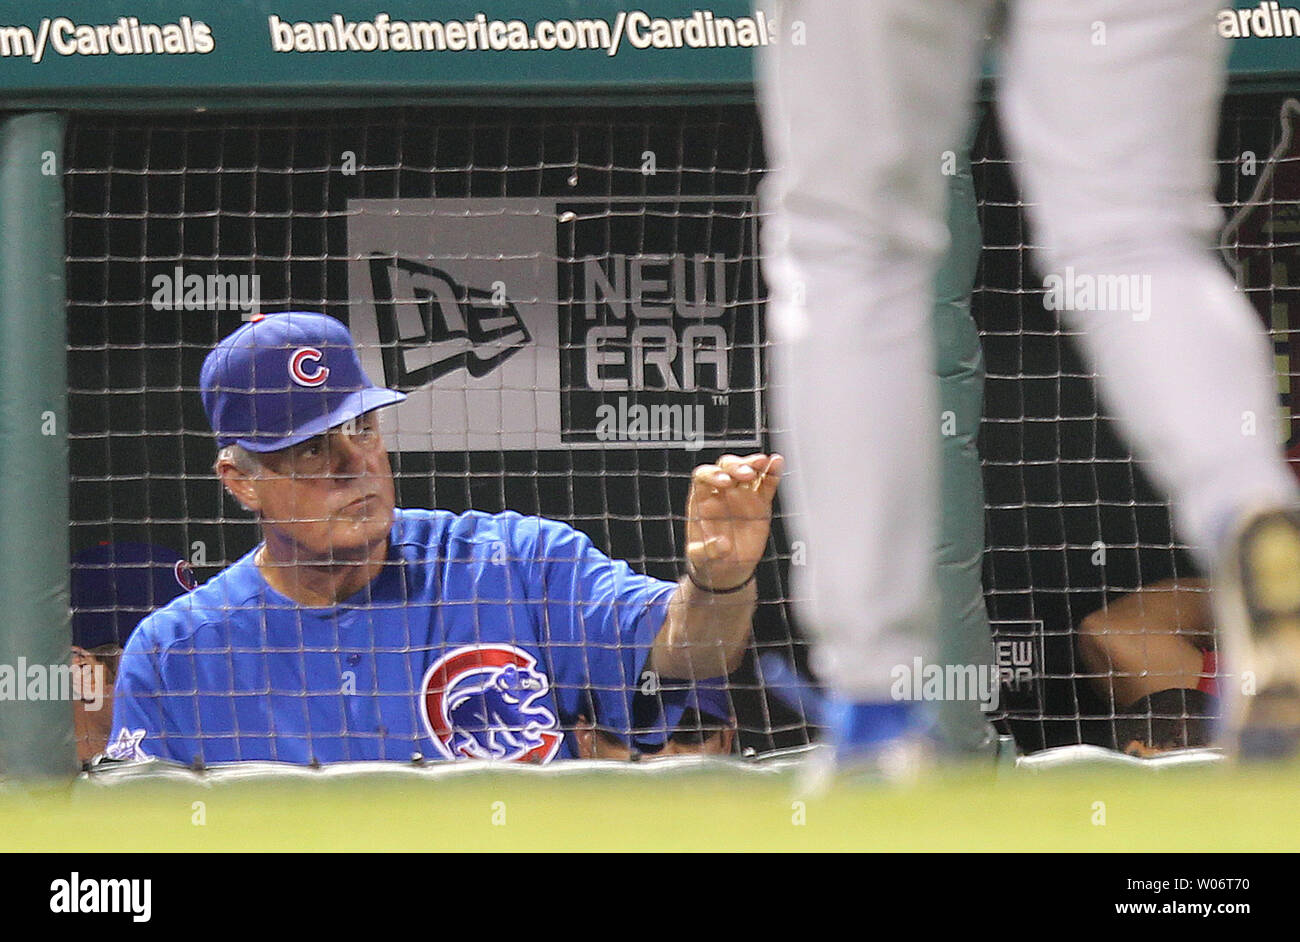 Chicago Cubs manager Lou Pinella looks on as pitching coach Larry Rothschild returns to the dugout after talking to pitcher Justin Berg in the seventh inning at Busch Stadium in St. Louis on August 13, 2010. St. Louis won the game 6-3. UPI/Bill Greenblatt - Stock Image